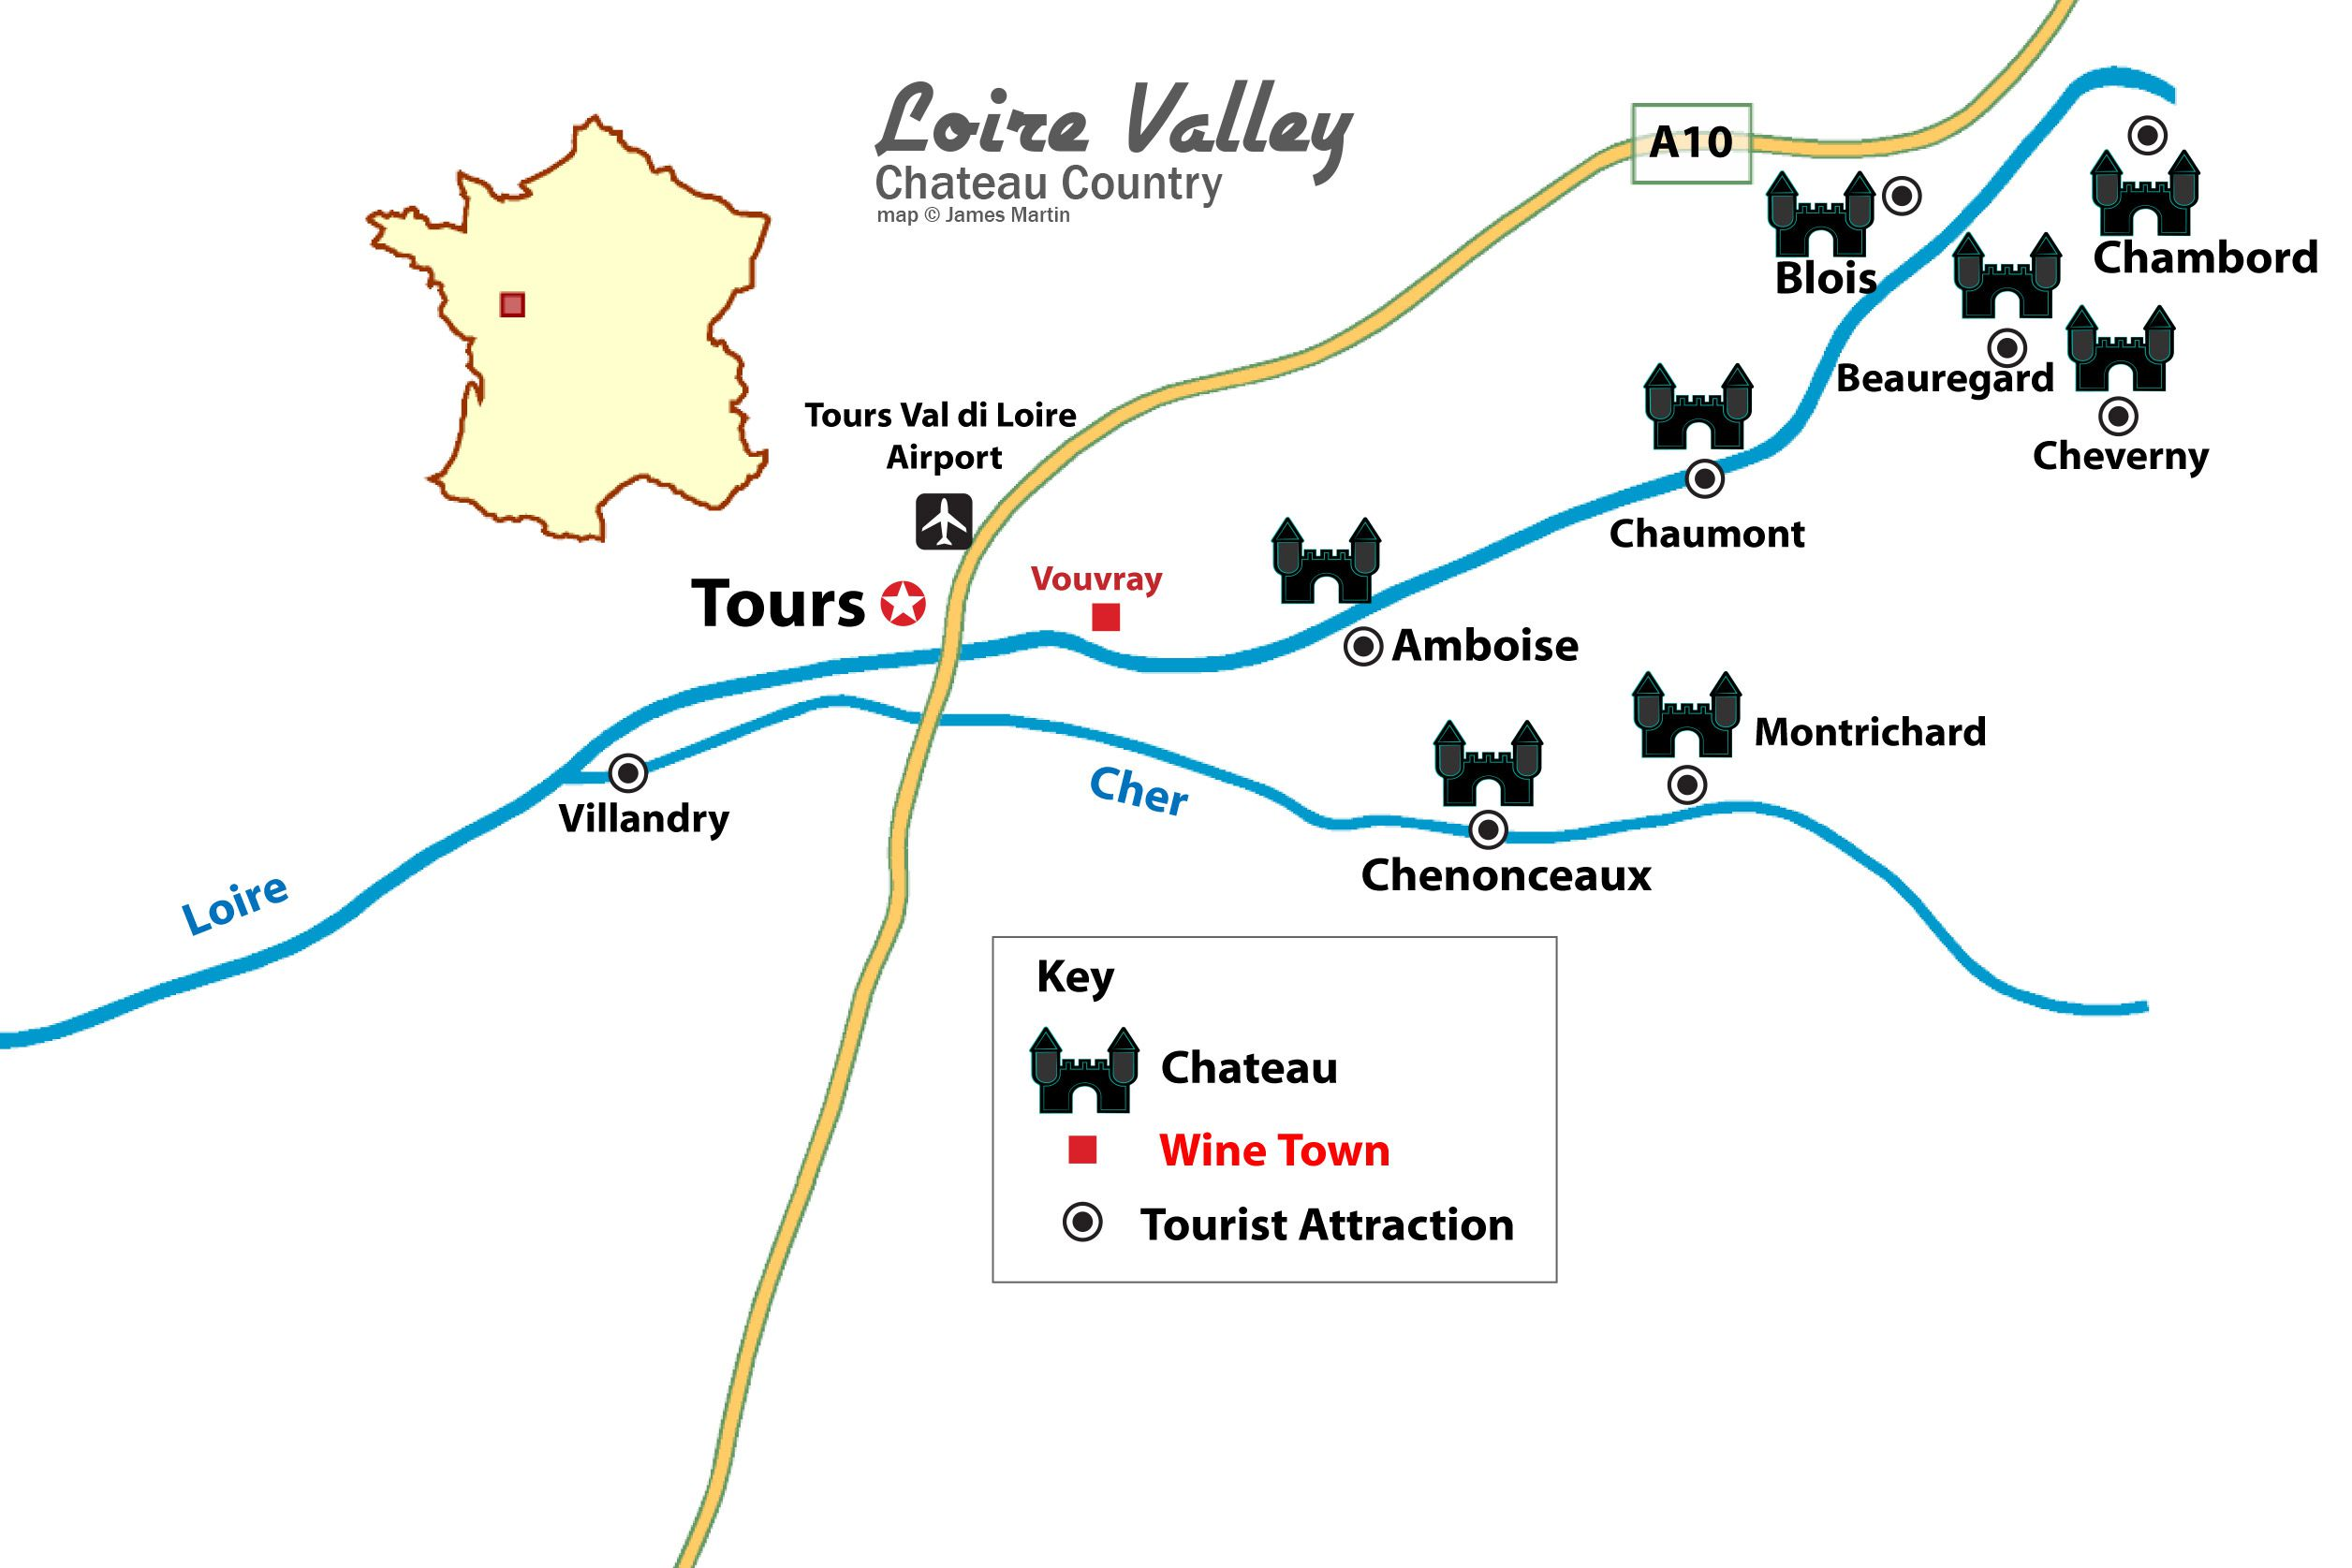 . loire valley chateau map